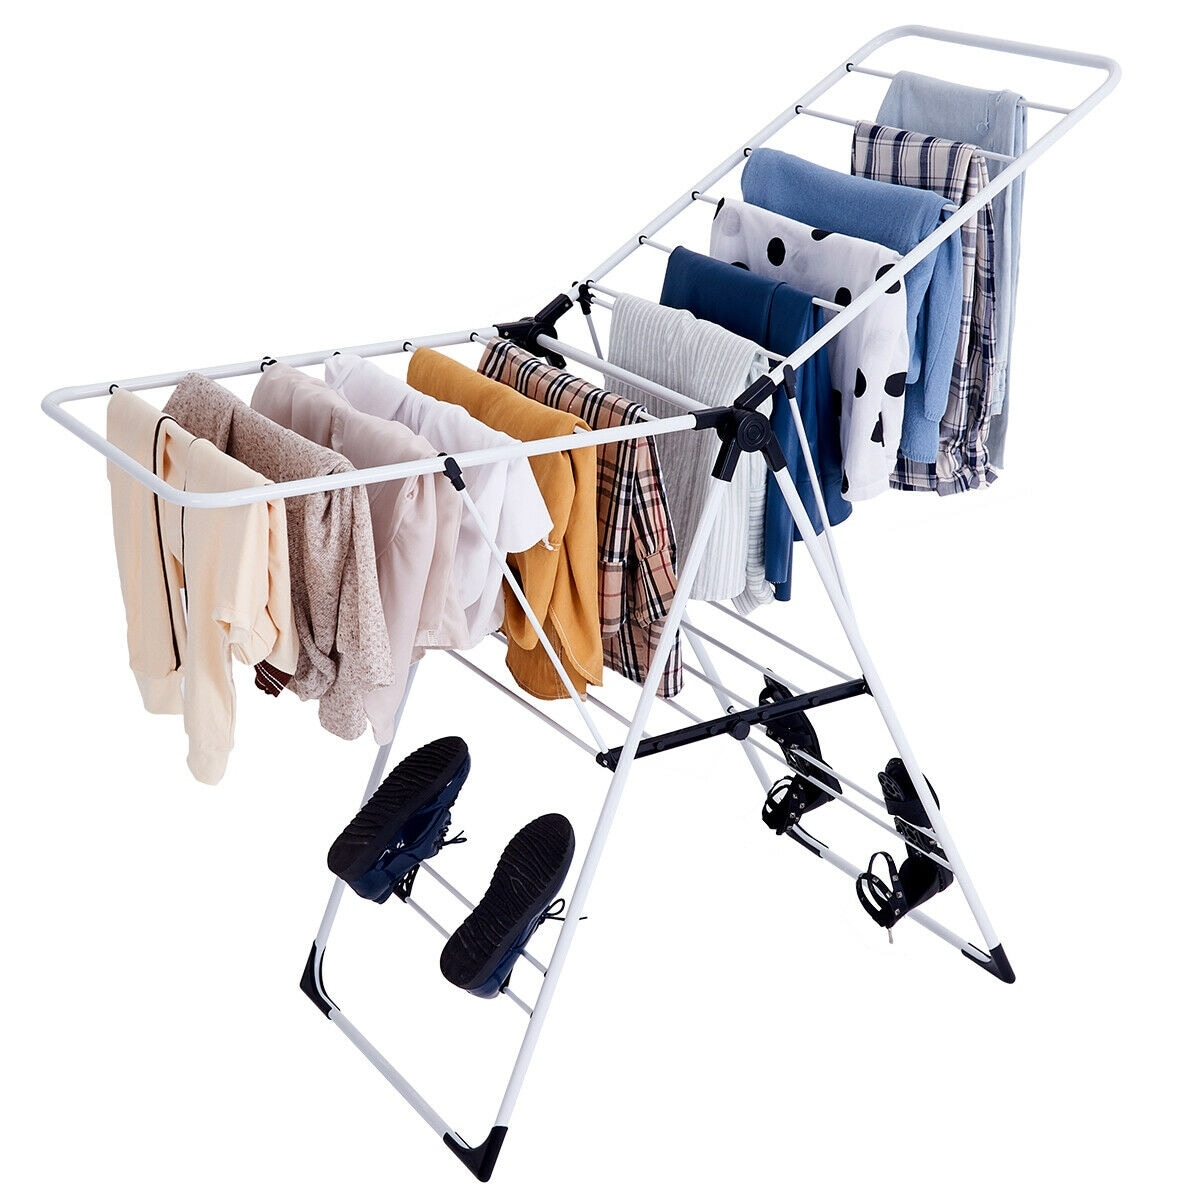 Costway Laundry Clothes Storage Drying Rack Portable Folding Dryer On Sale Overstock 16794553